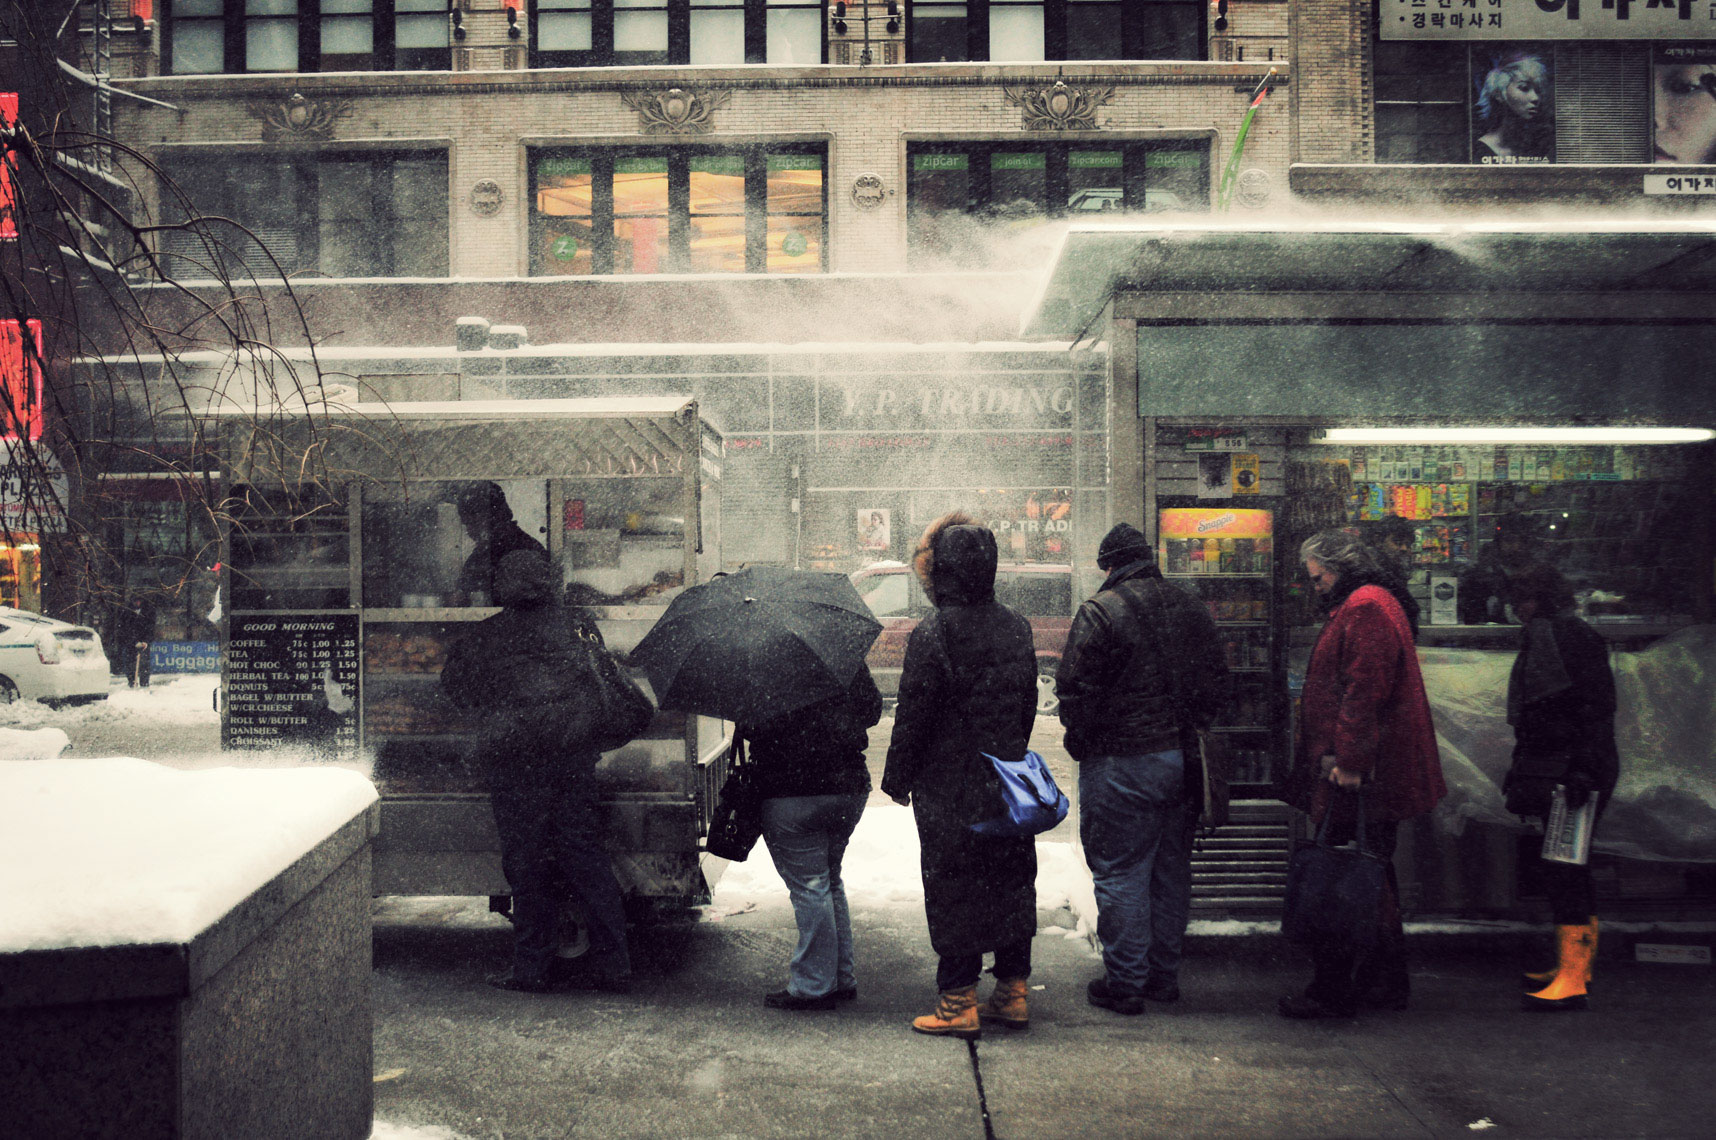 People wait in line for their morning coffee amid miserable weather at 32nd Street, New York City.